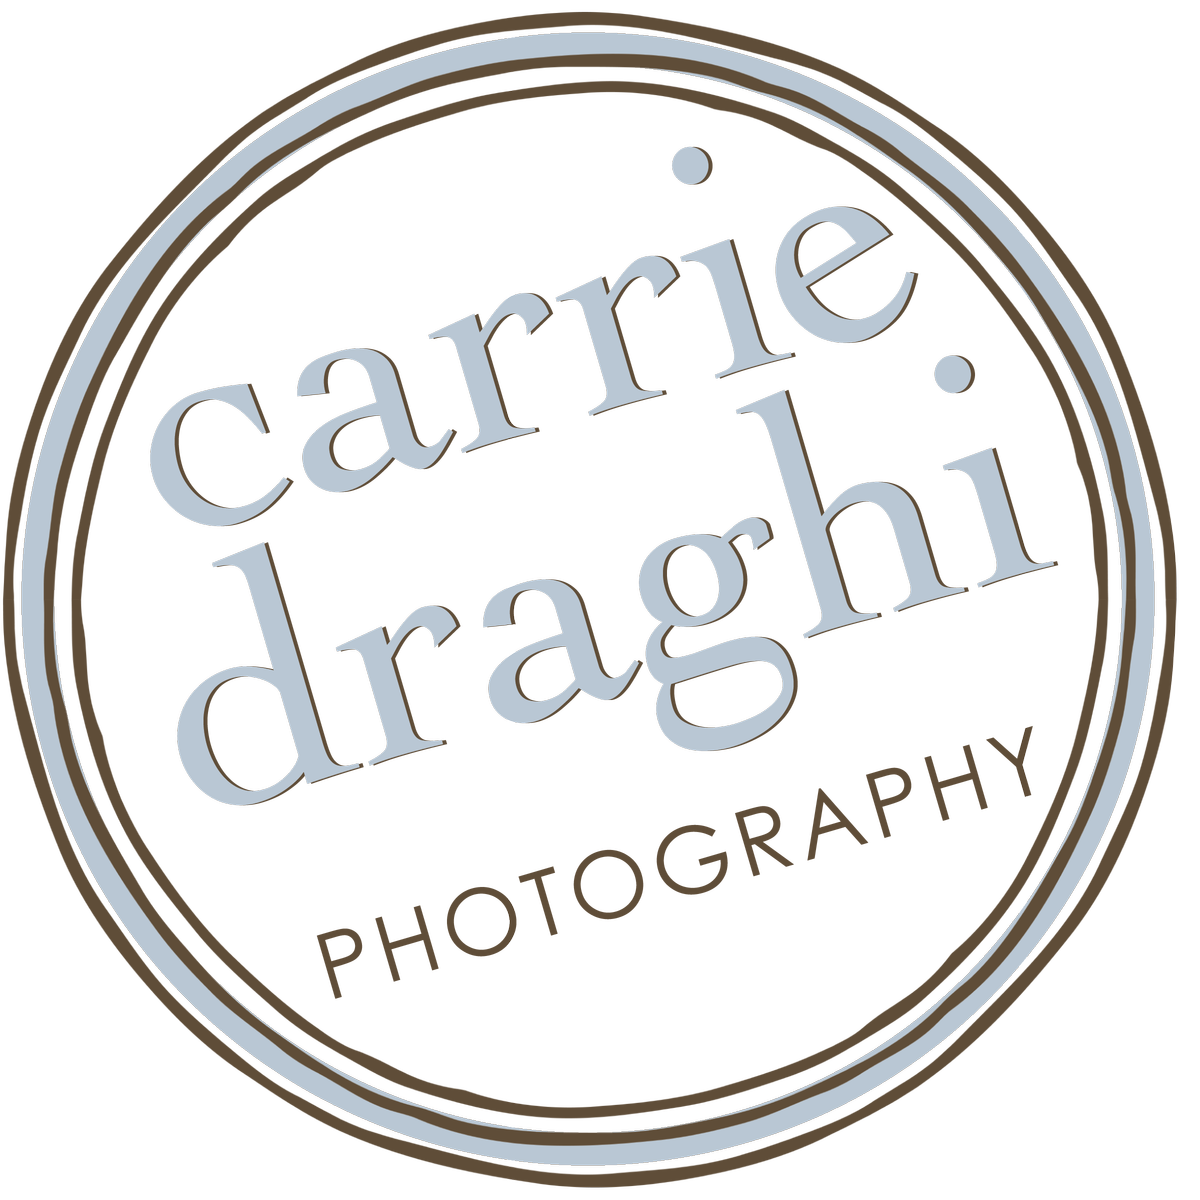 Carrie Draghi